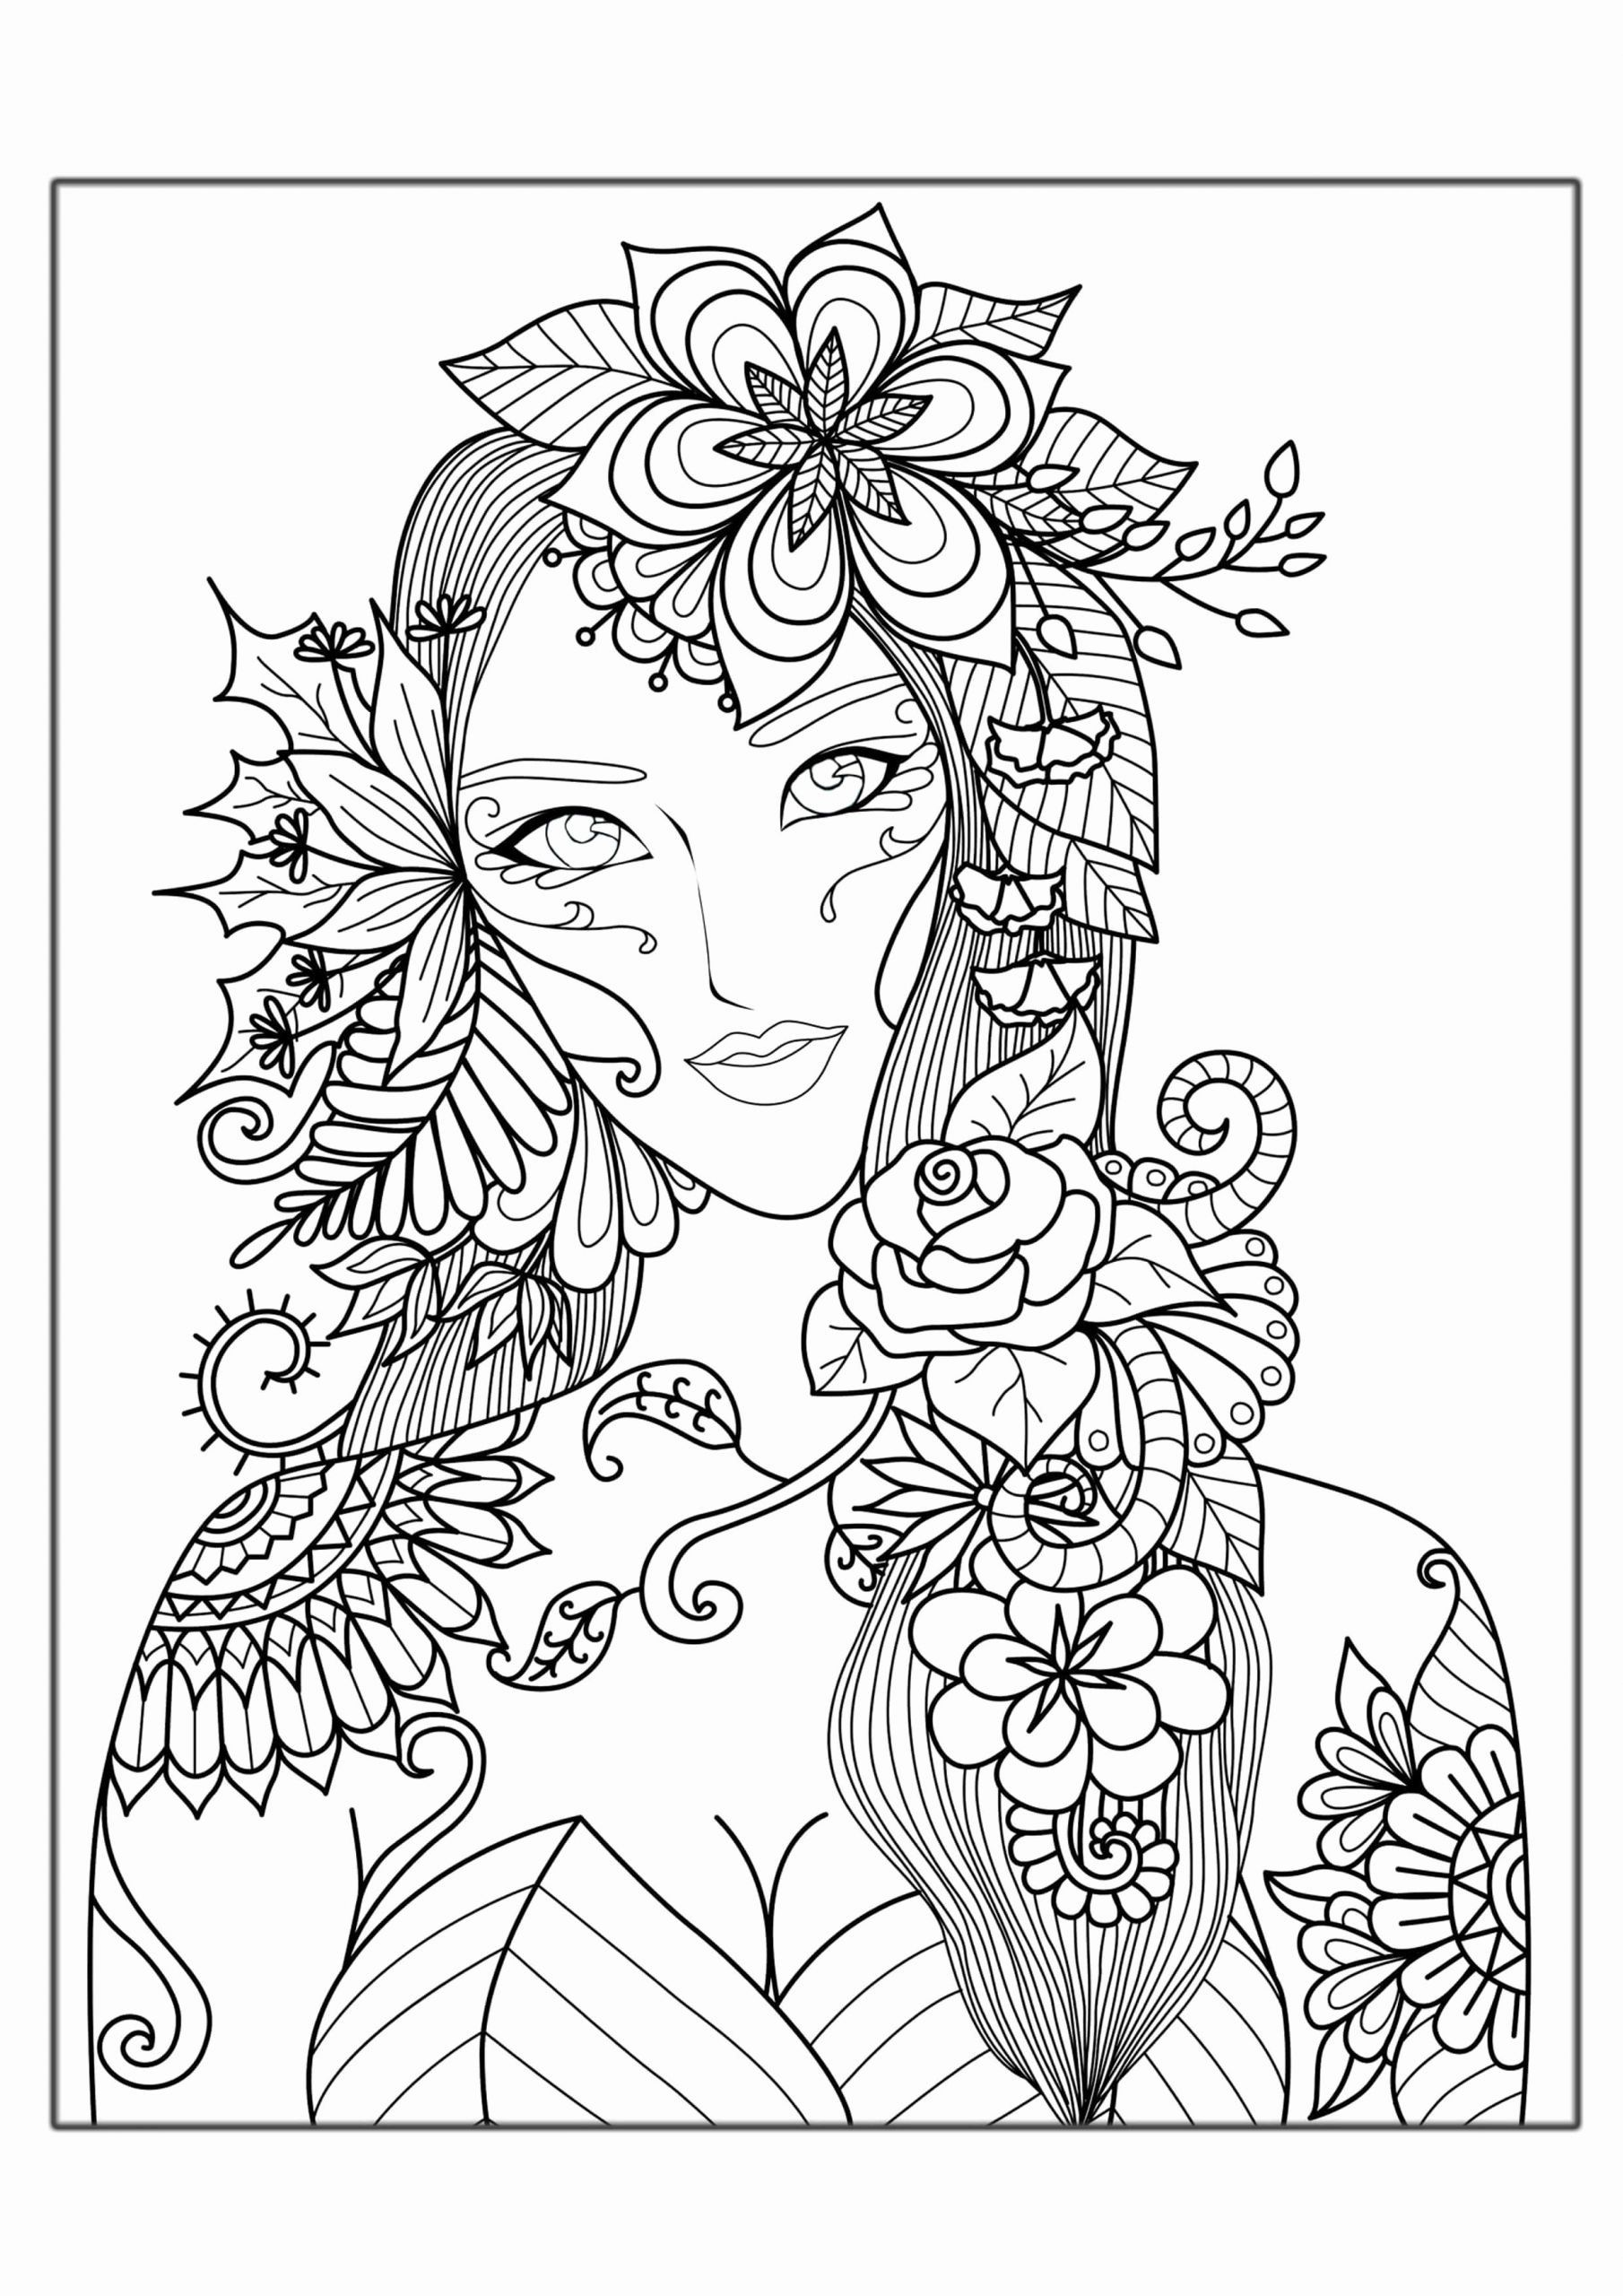 Hard Coloring Books Awesome Hard Coloring Pages 15 Abstract Coloring Pages Detailed Coloring Pages Fall Coloring Pages